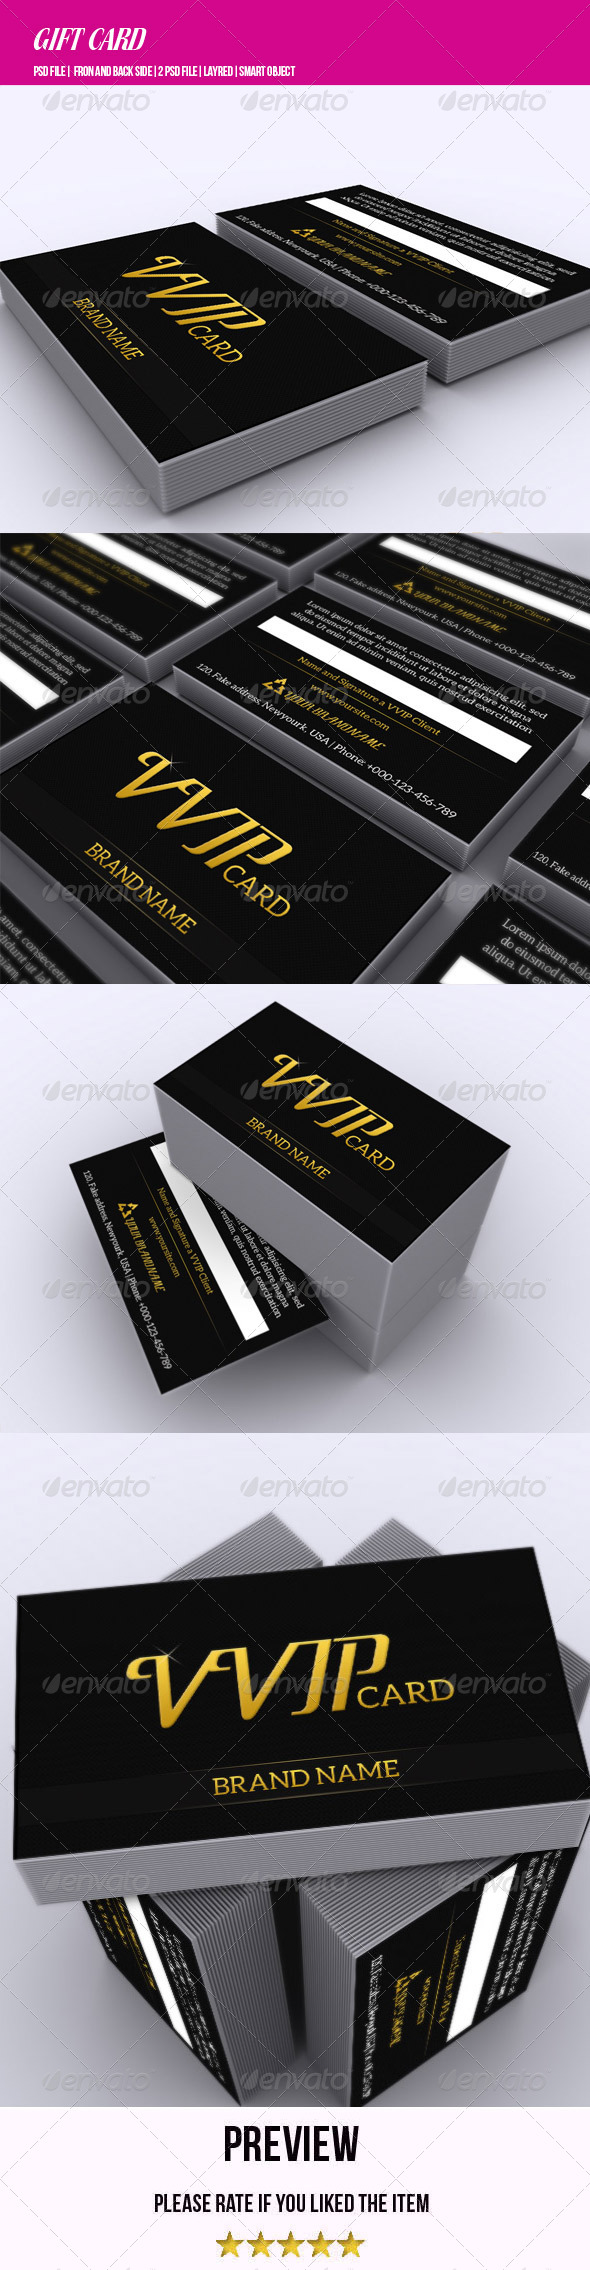 VVIP Card - Loyalty Cards Cards & Invites